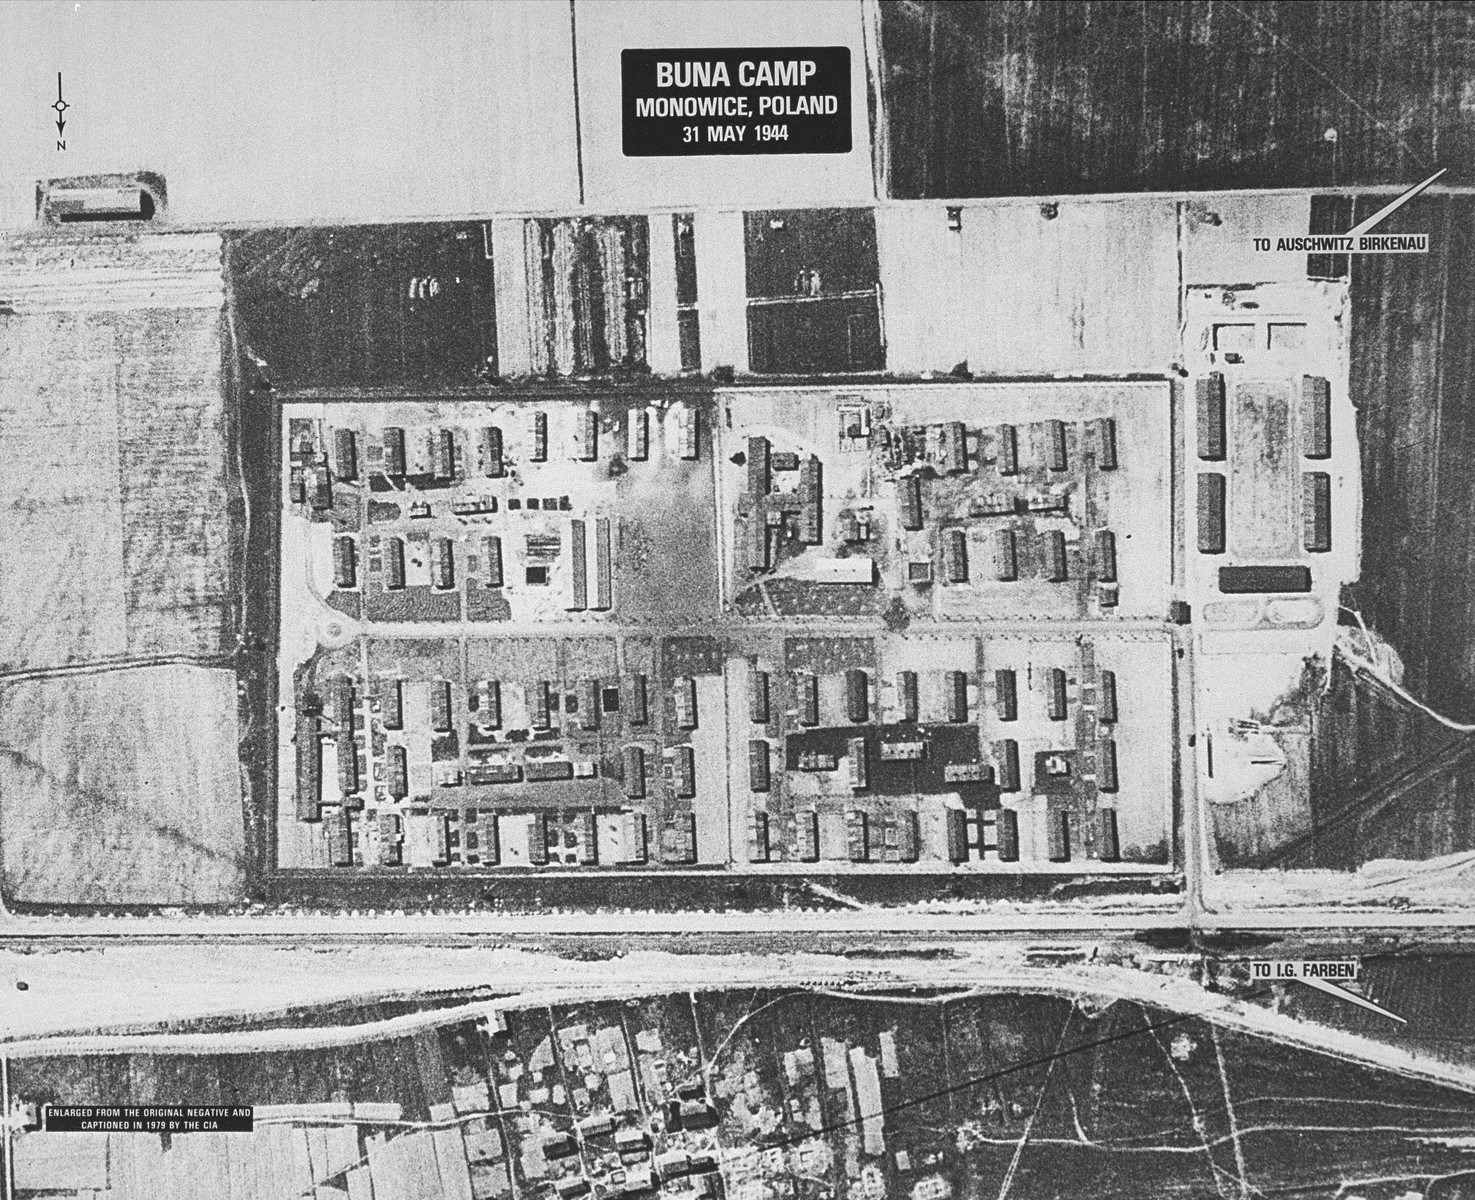 An enlarged detail of an aerial reconnaissance photograph of the Auschwitz concentration camp showing the I.G. Farben Buna complex.